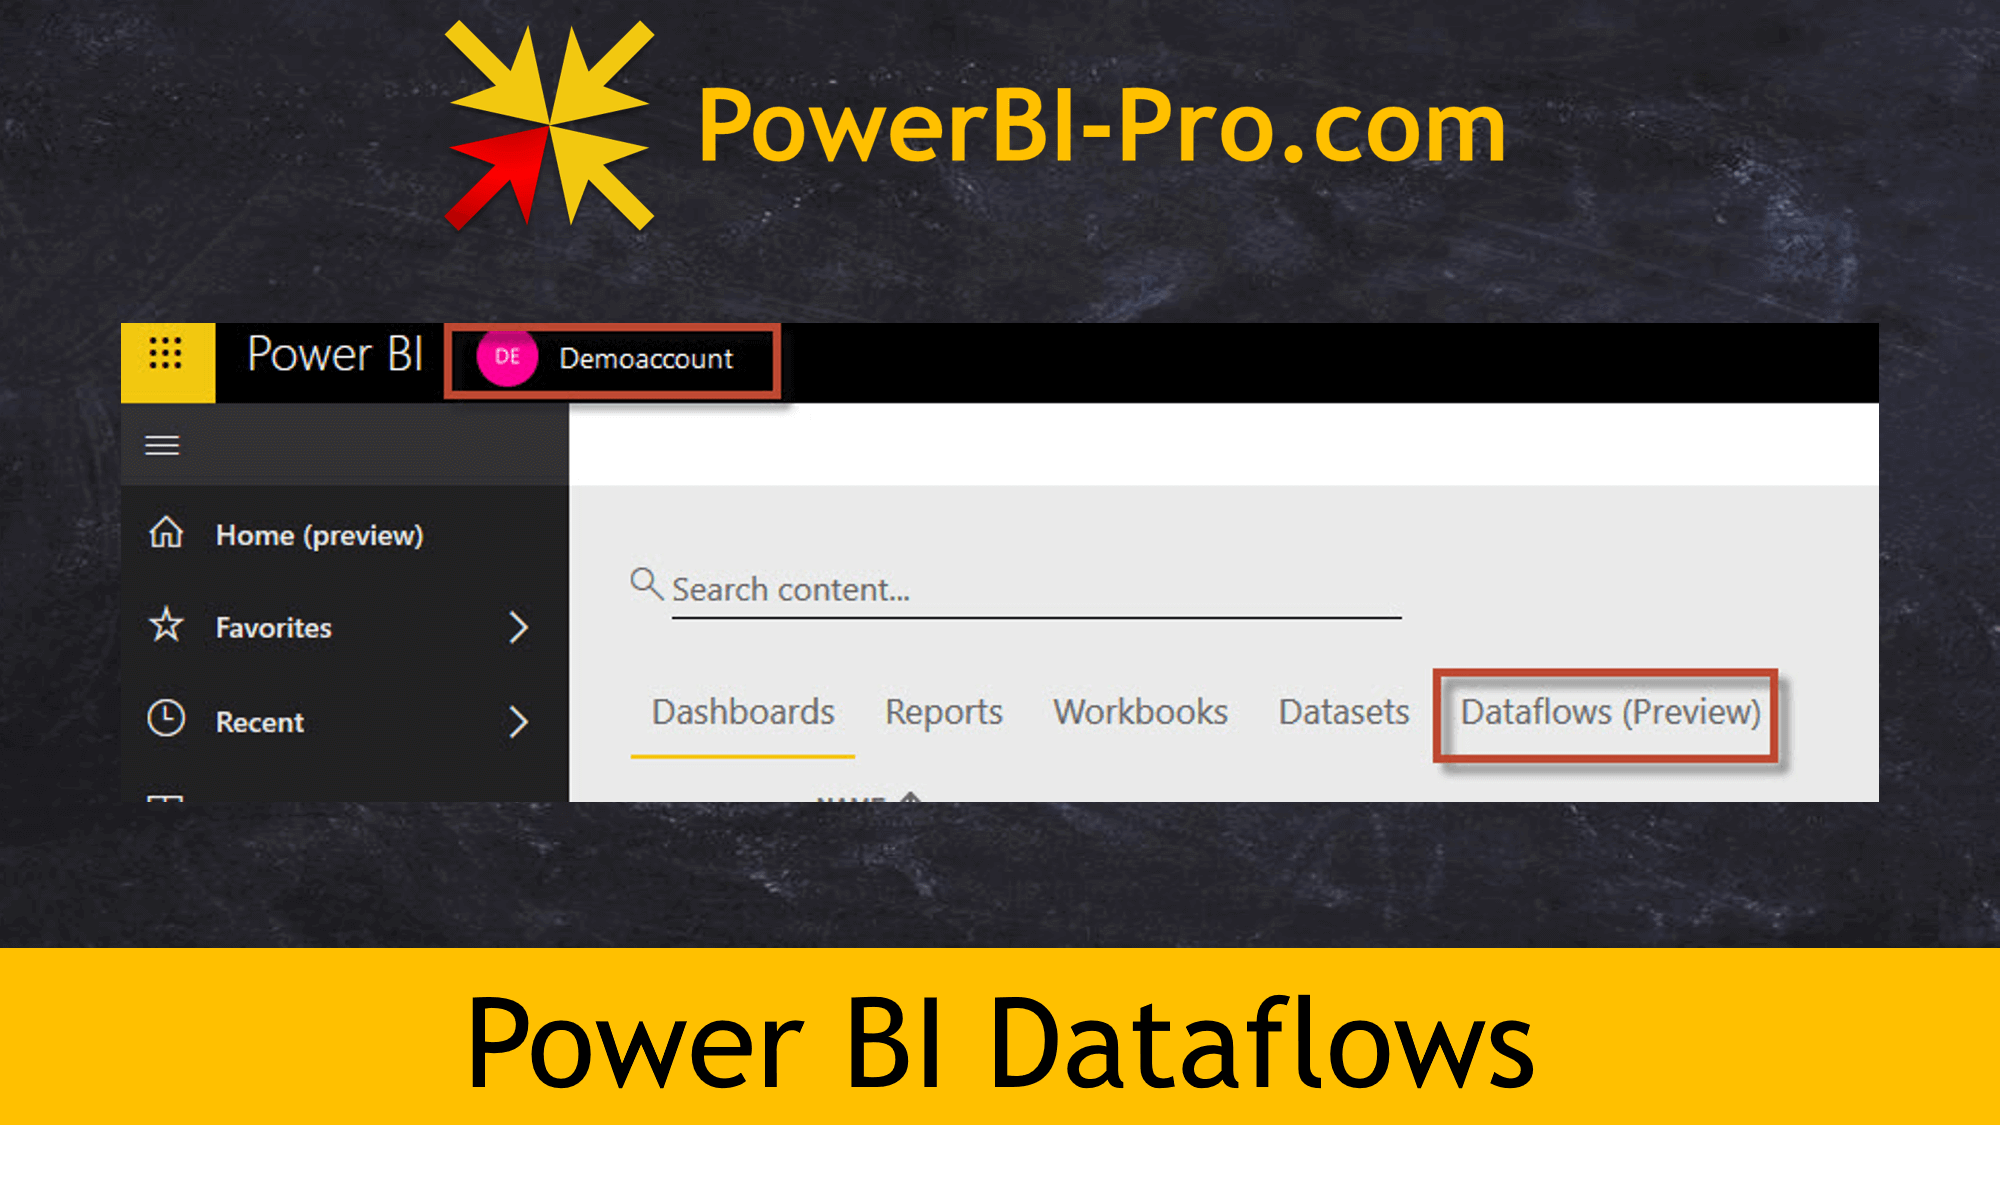 First thoughts about the Power BI Dataflows - PowerBI Pro